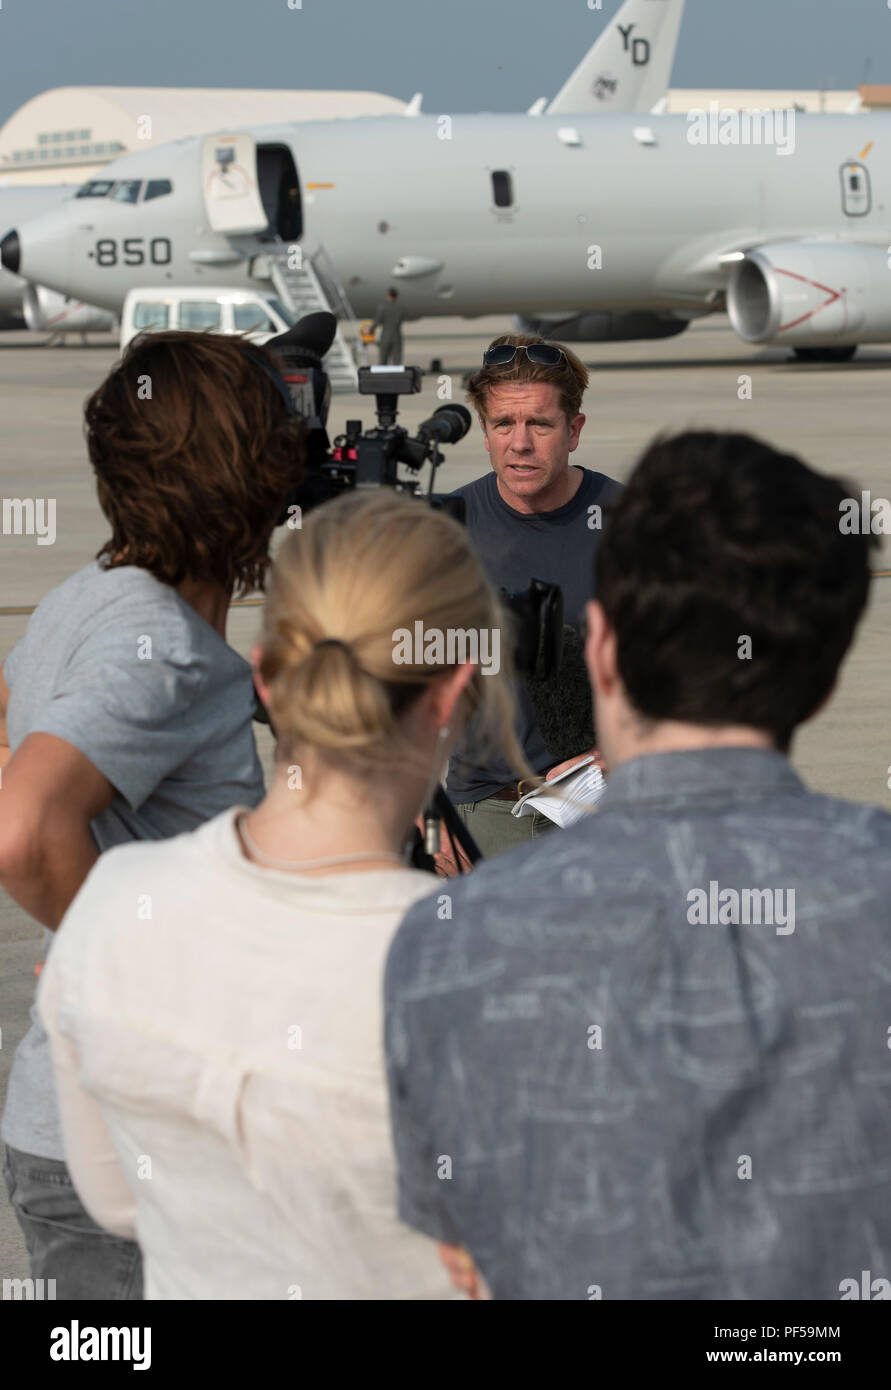 CNN Reporter Ivan Watson airs a live report after a flight on a U.S. Navy P-8A Poseidon Aug. 10, 2018, at Kadena Air Base, Japan. News agencies were invited to fly on the P-8A to learn about the Poseidon's abilities and the role it plays in the Pacific region. (U.S. Air Force photo by Staff Sgt. Micaiah Anthony) - Stock Image